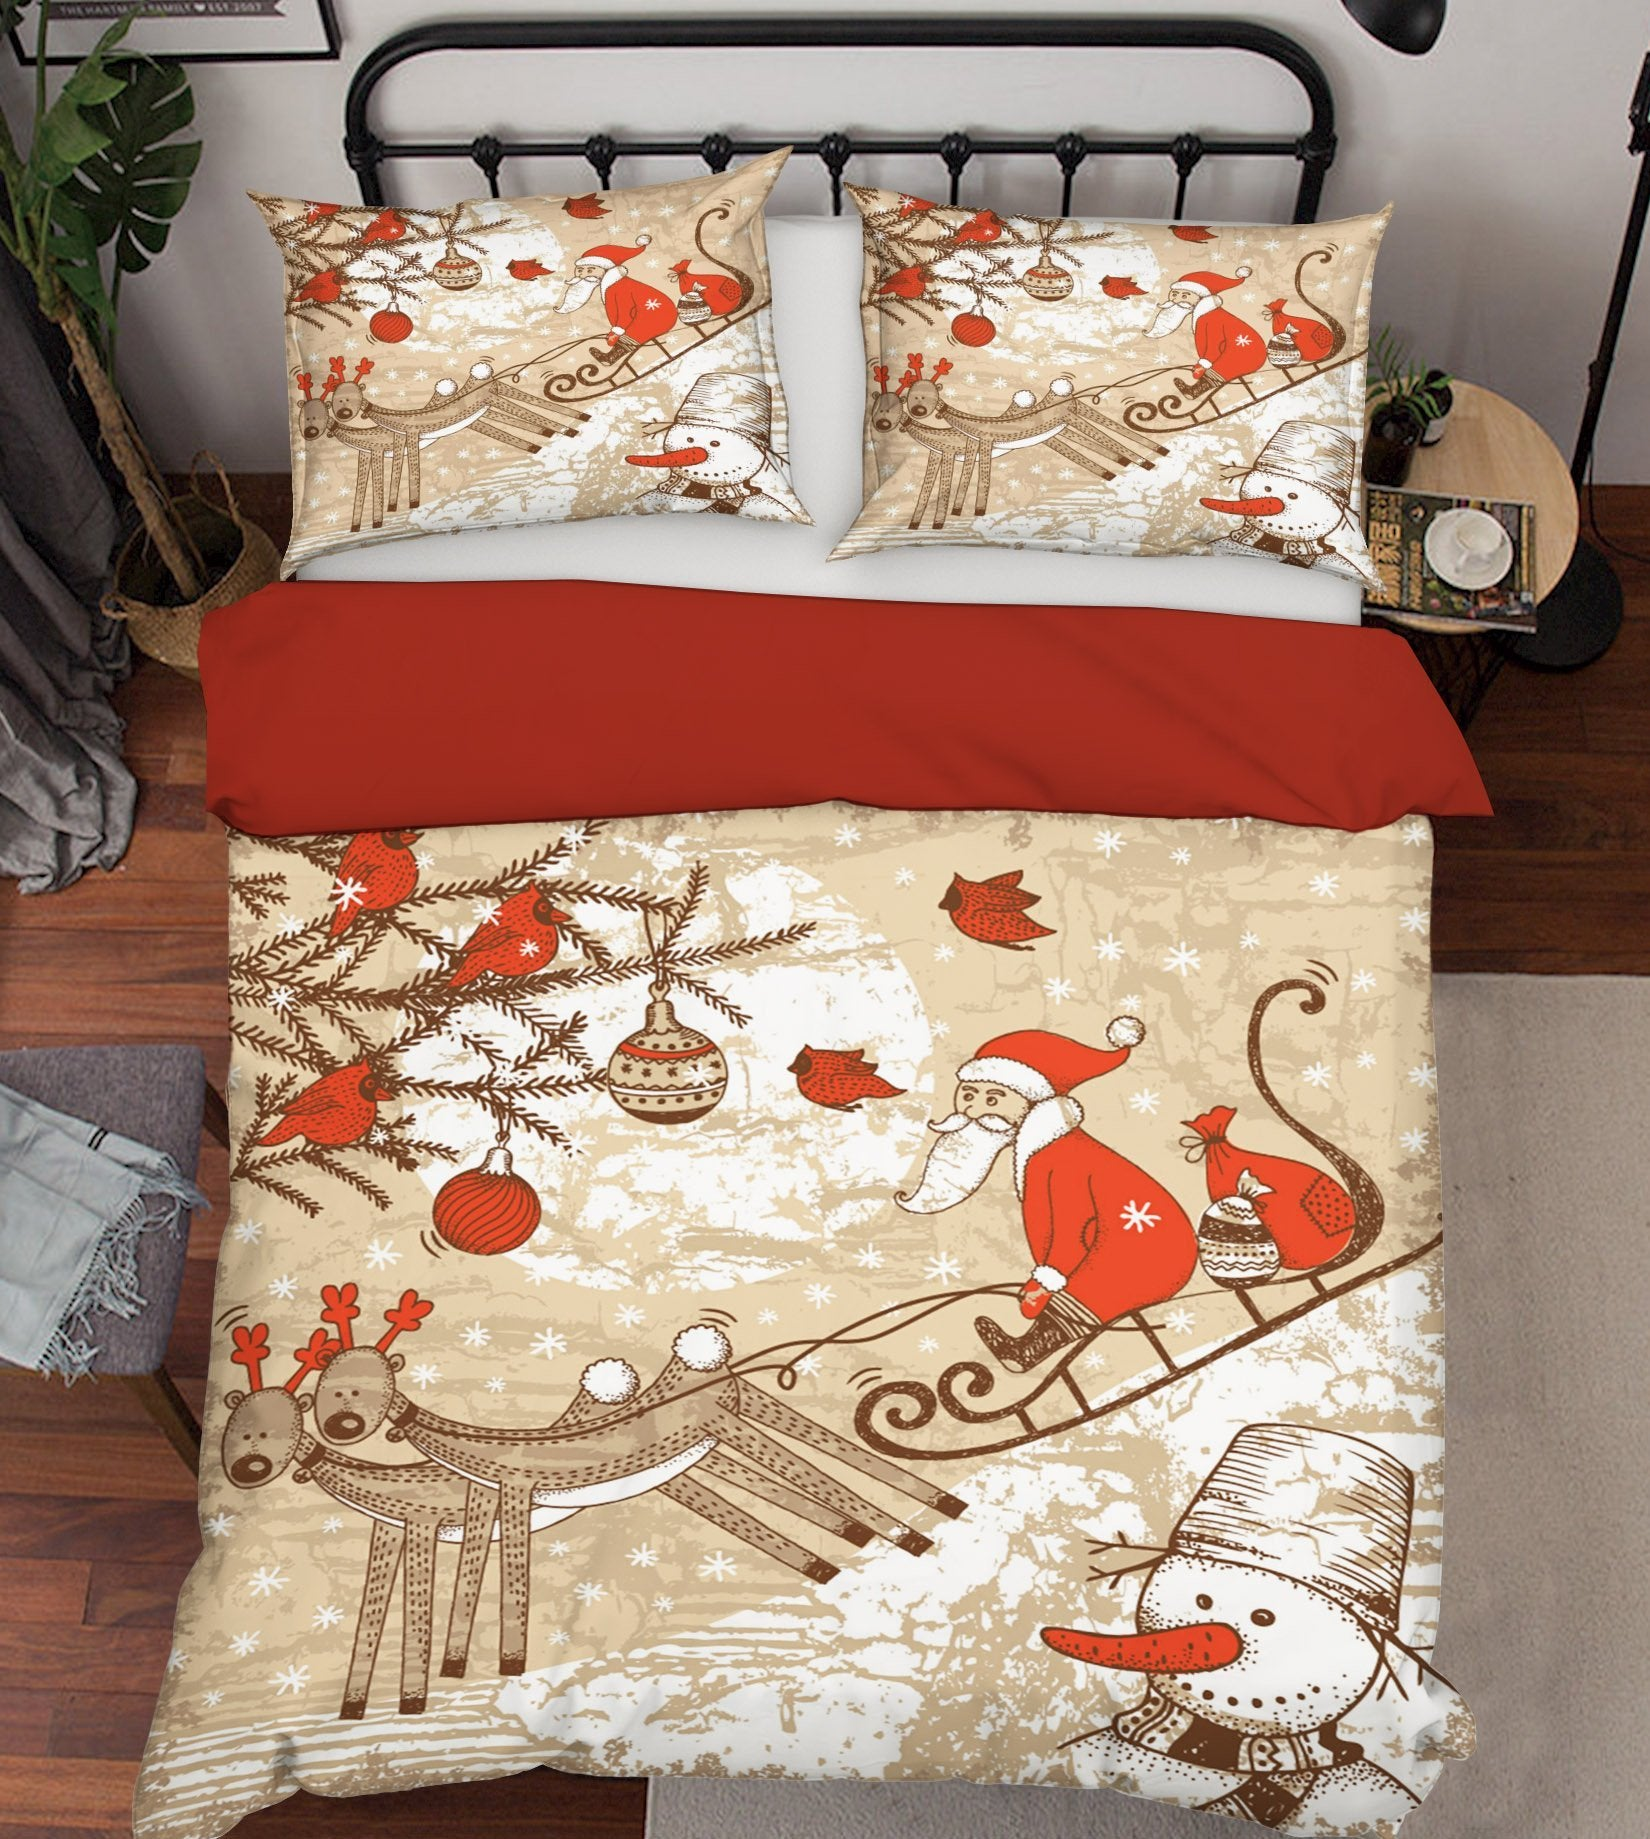 3D Christmas Sled Landslide 45 Bed Pillowcases Quilt Quiet Covers AJ Creativity Home